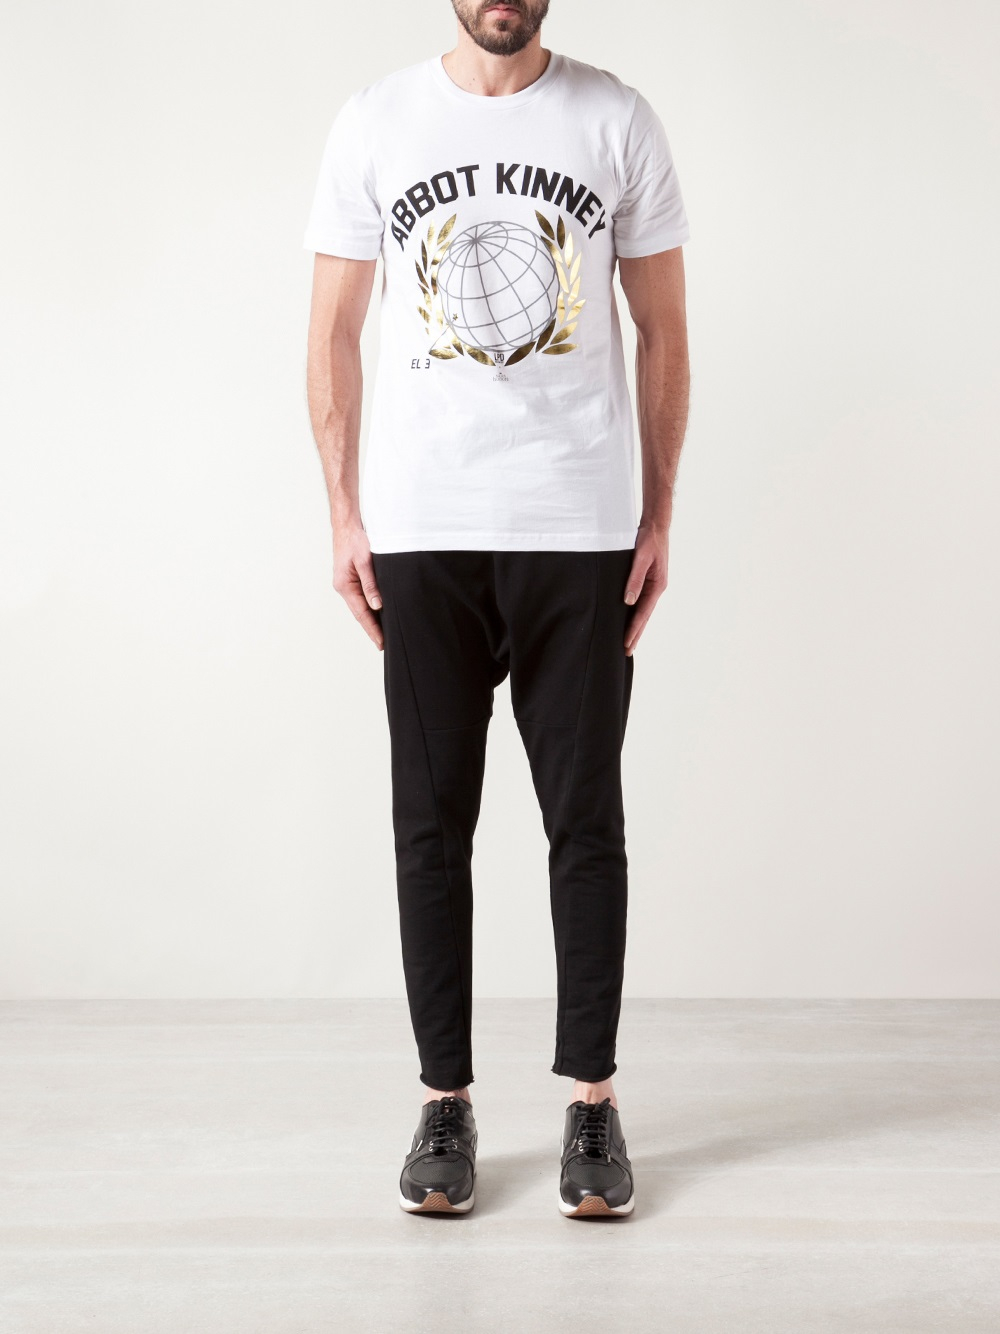 LPD New York Graphic Tshirt in White for Men